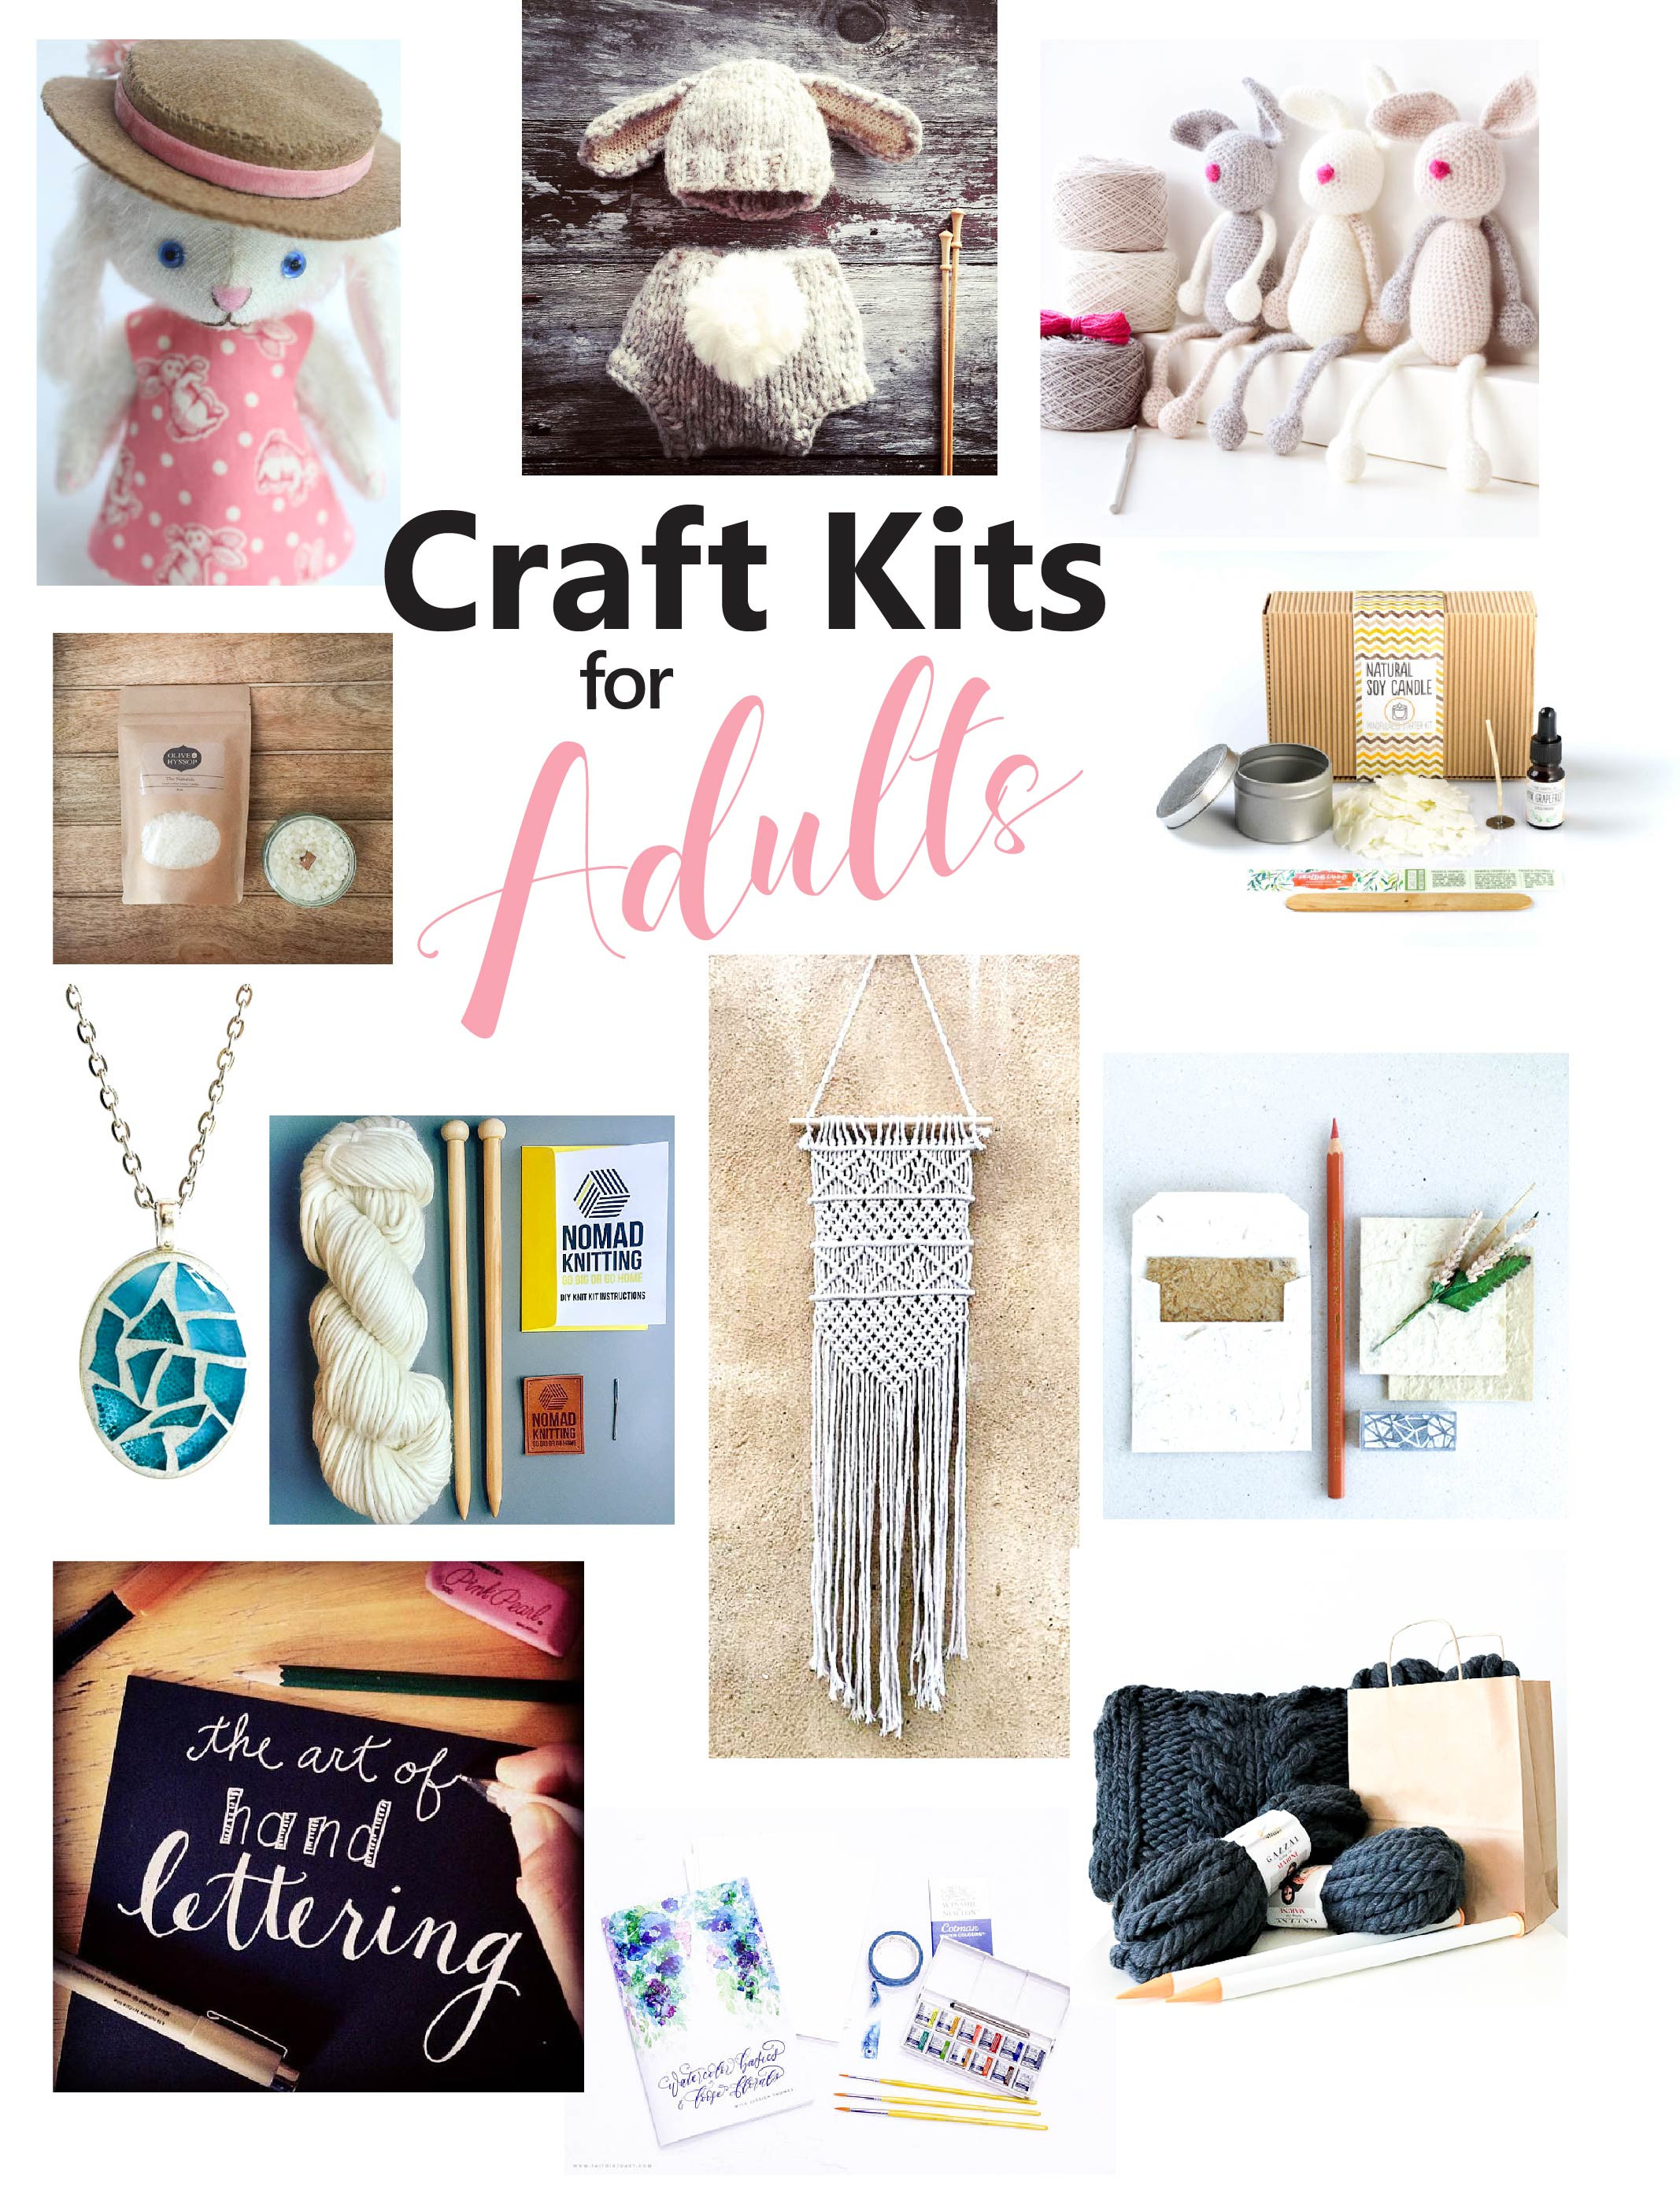 Best ideas about Adult Craft Kits . Save or Pin The Best Craft Kits for Adults – Sustain My Craft Habit Now.